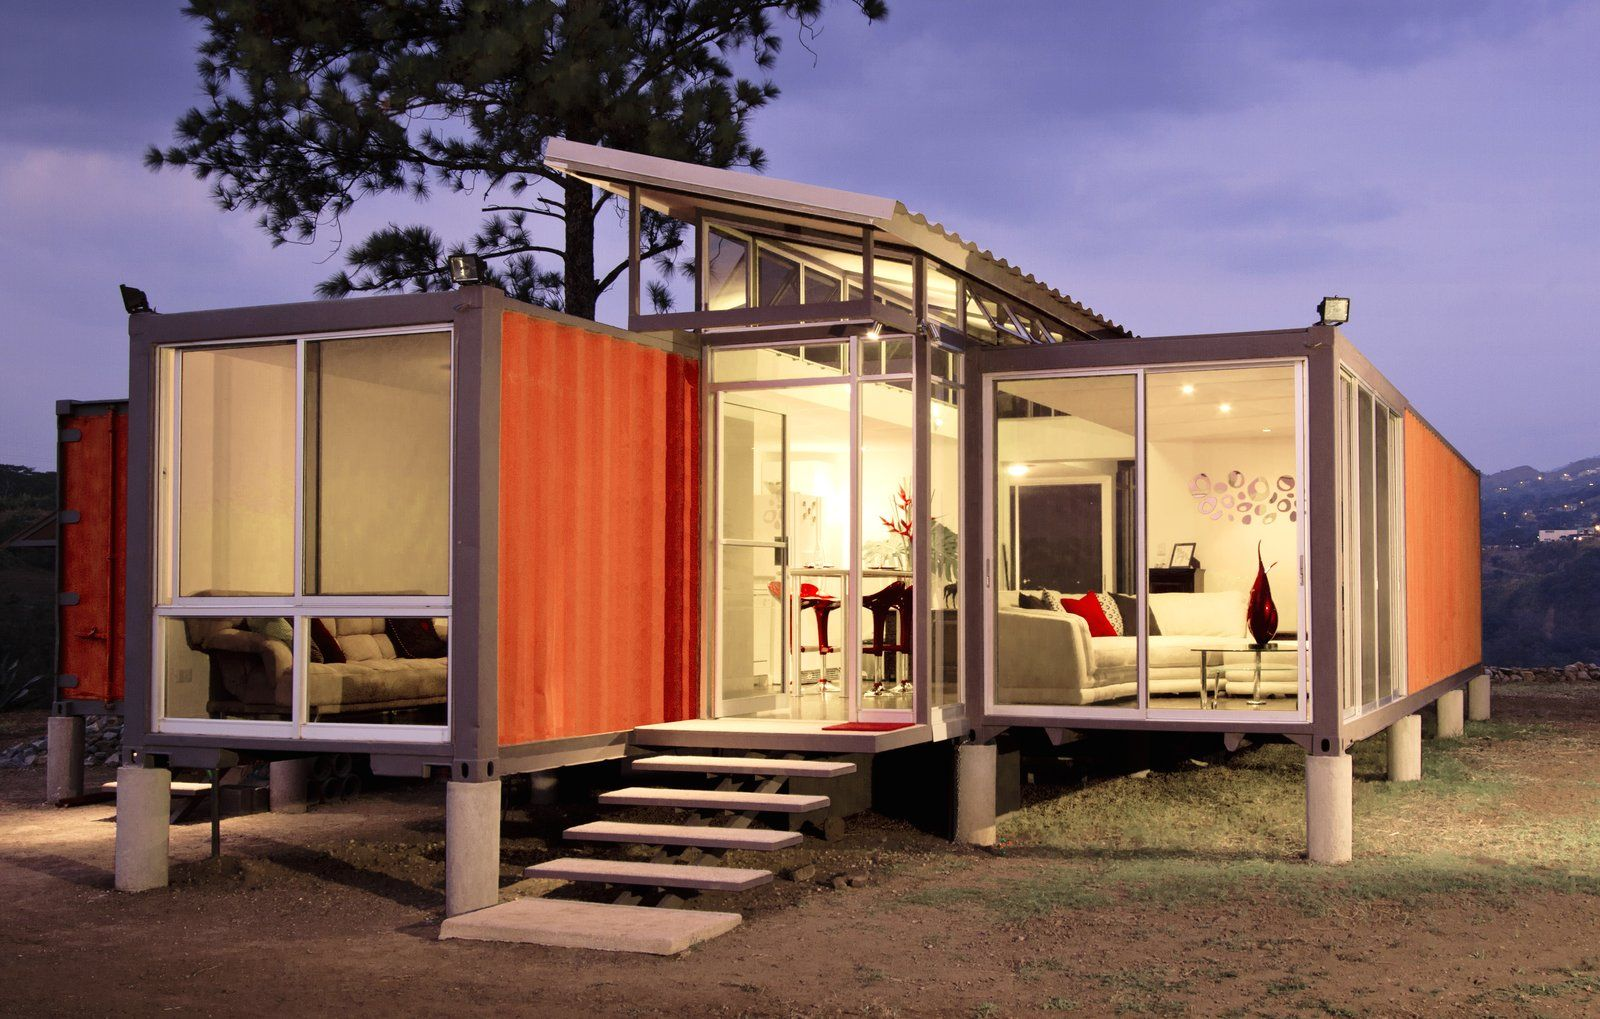 20 Ideas On What You Can Do With Old Shipping Containers From House Container House Container House Plans Building A Container Home